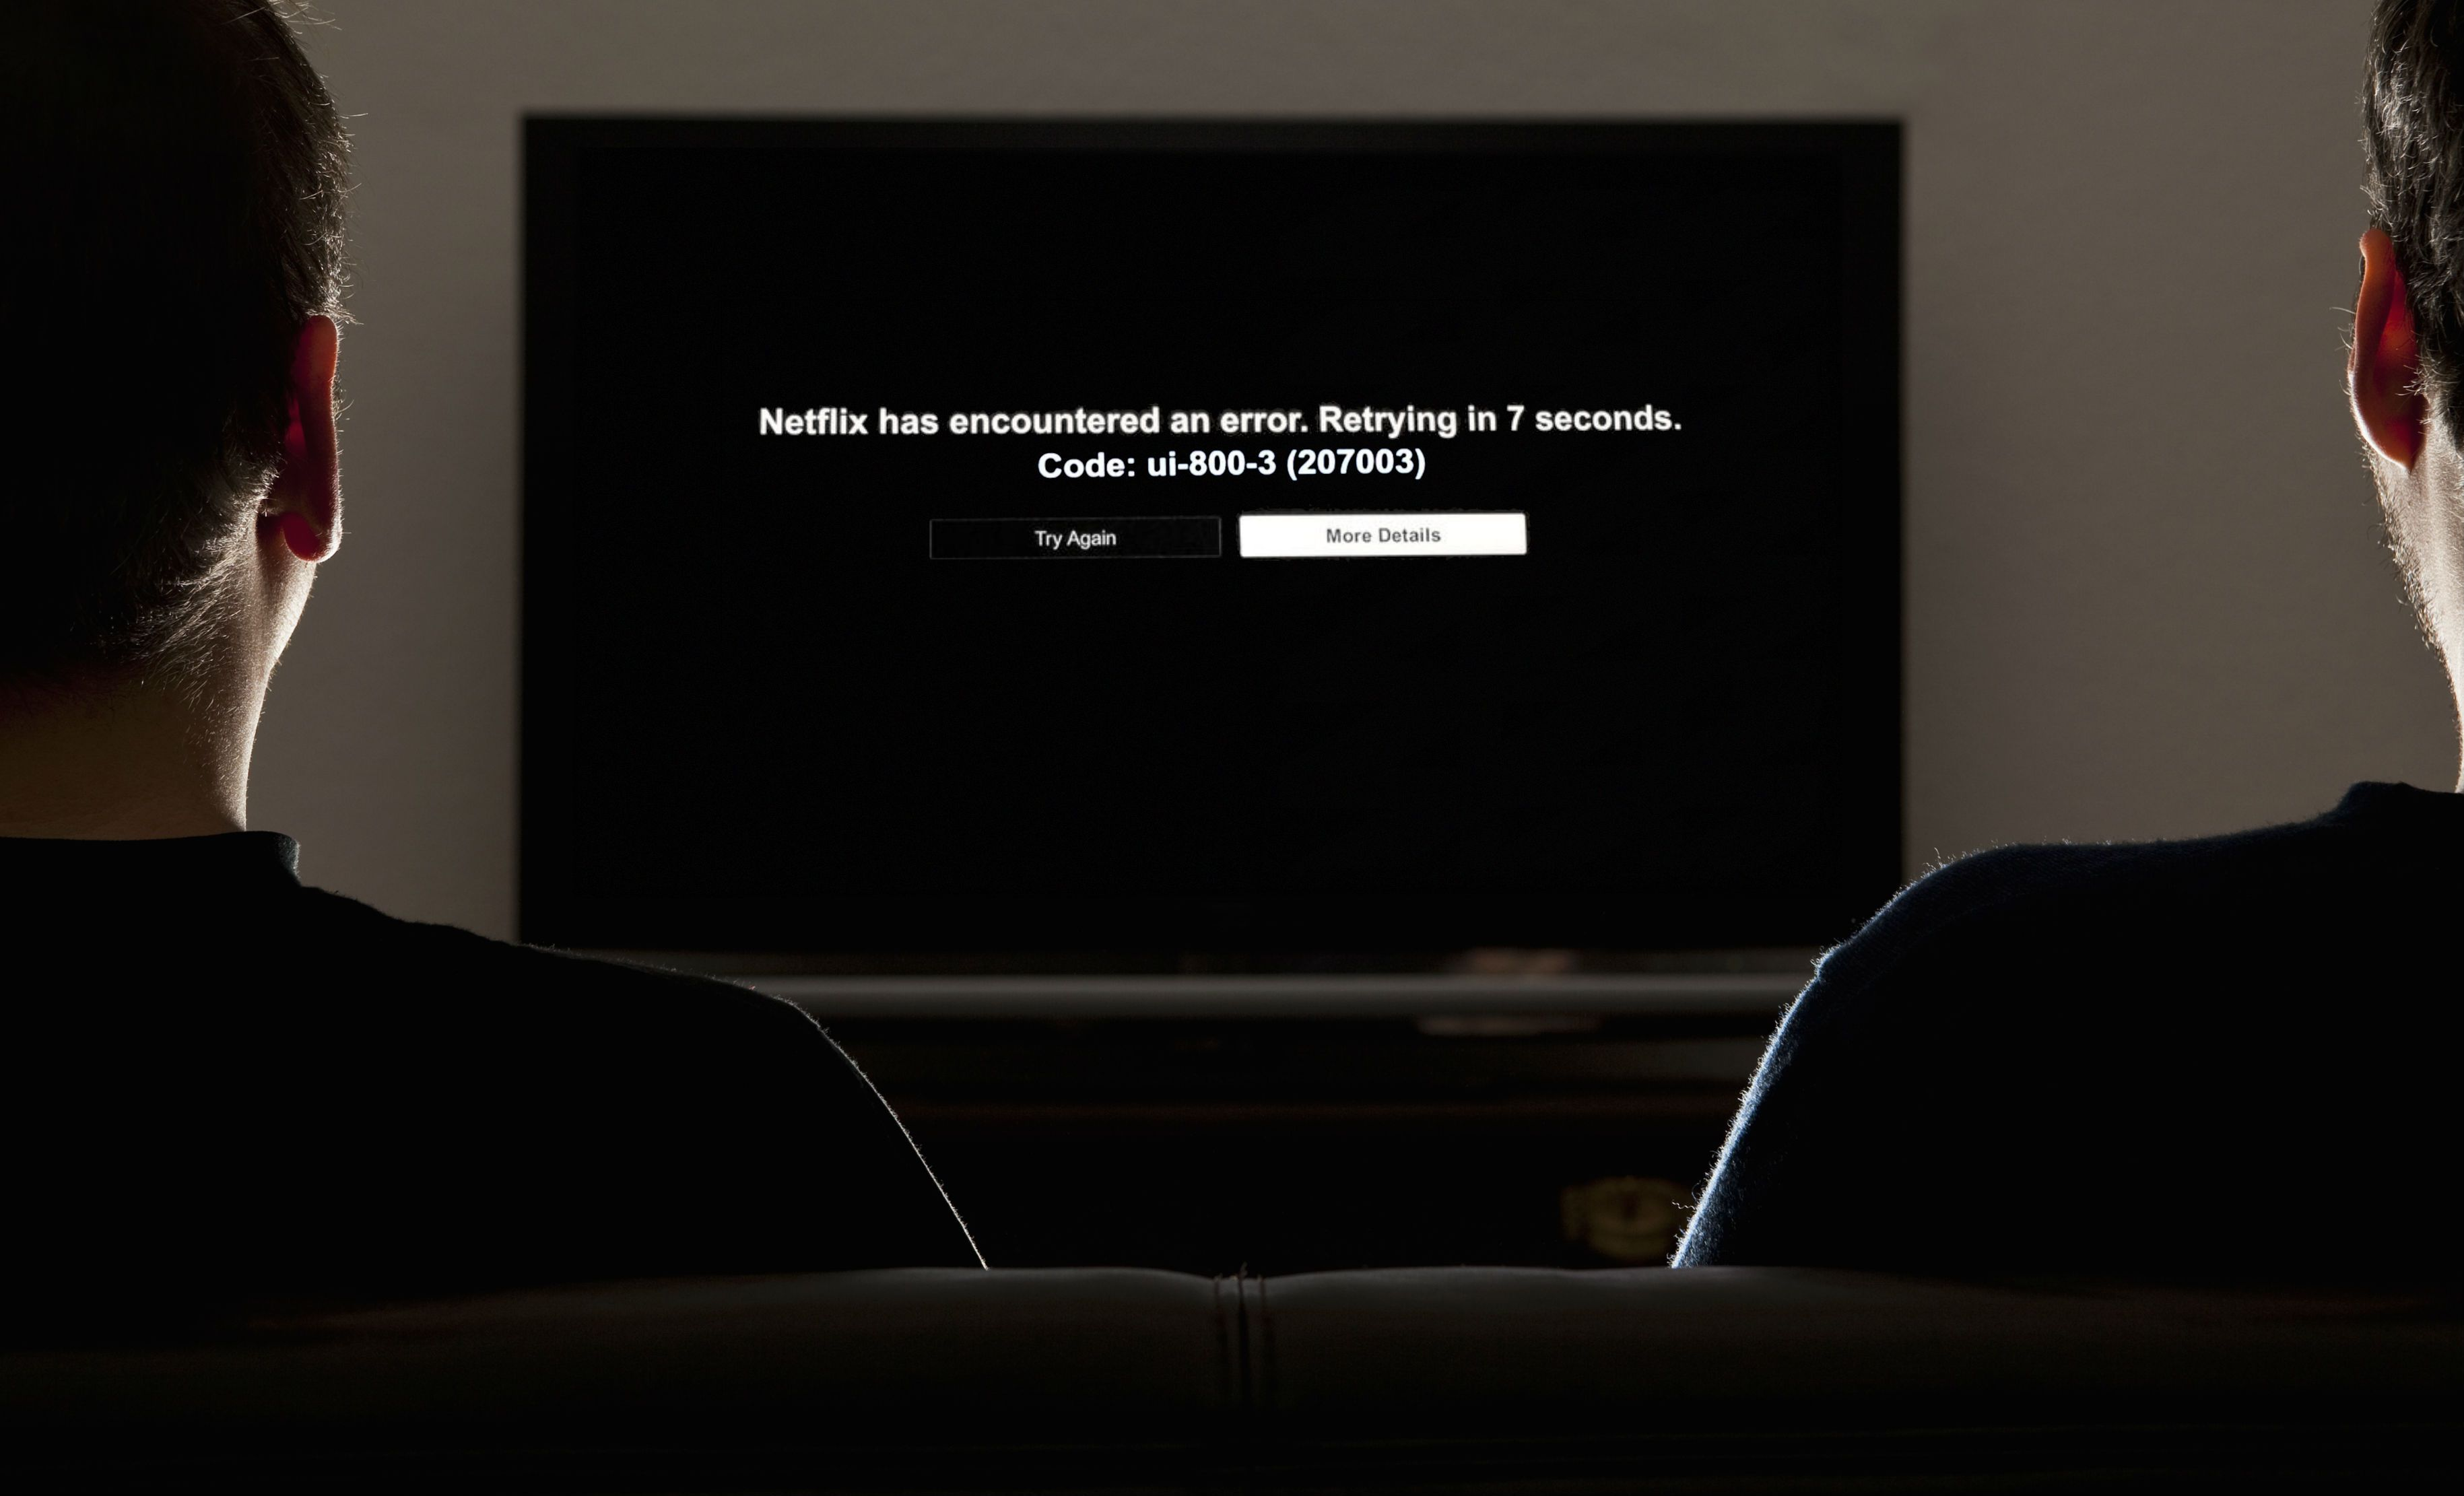 How to Fix Netflix Error Code UI-800-3